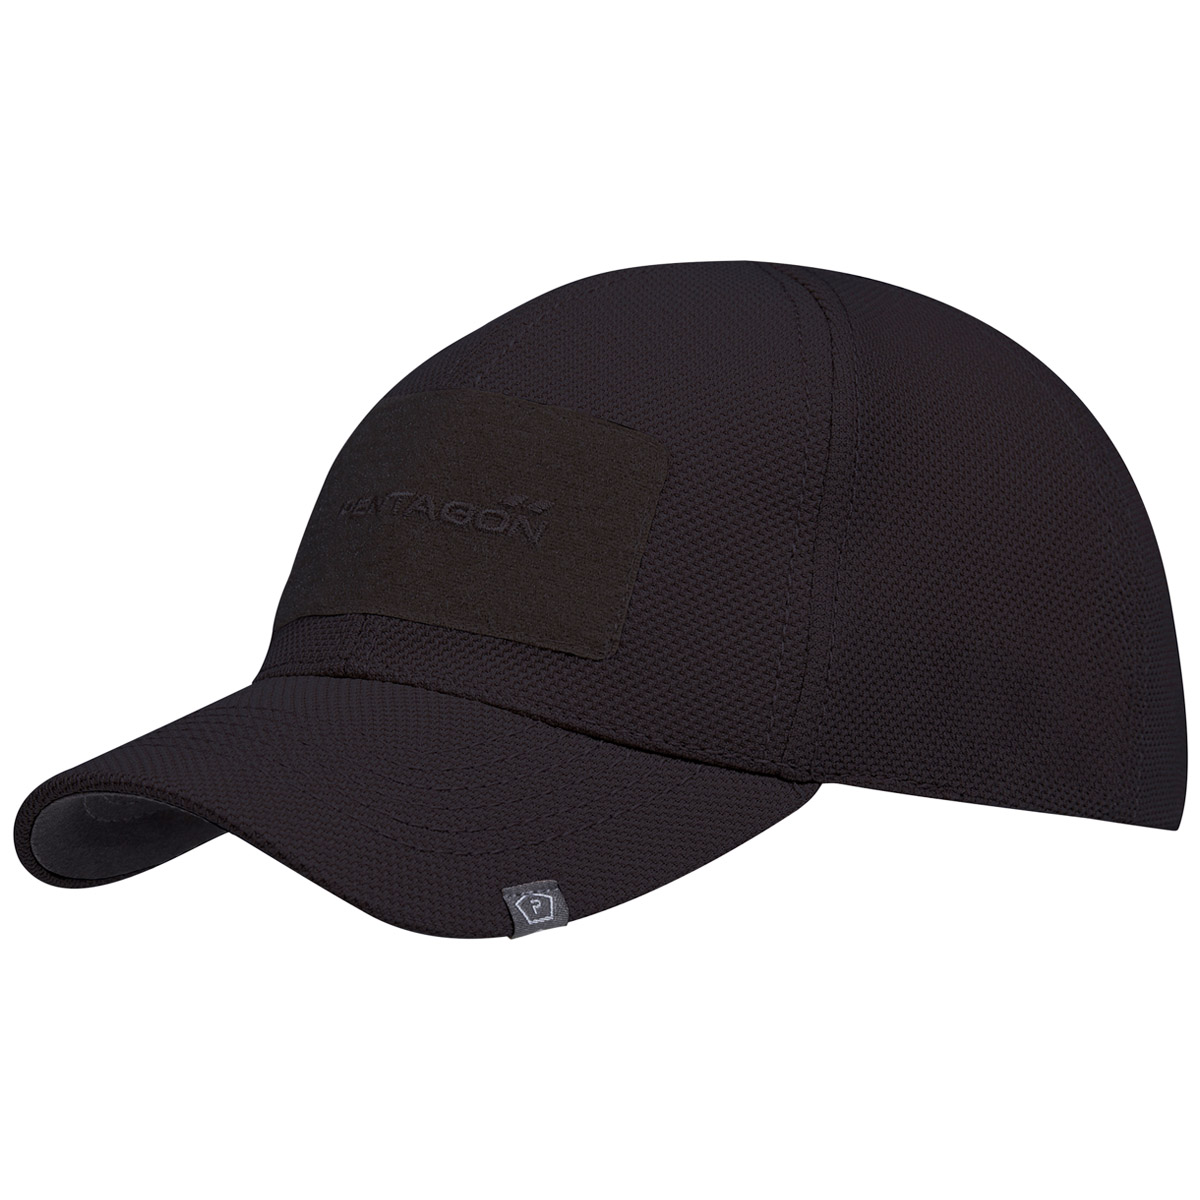 Details about Pentagon Nest Army Tactical Baseball Cap Police Security  Hiking Sun Hat Black 976698c53e8b